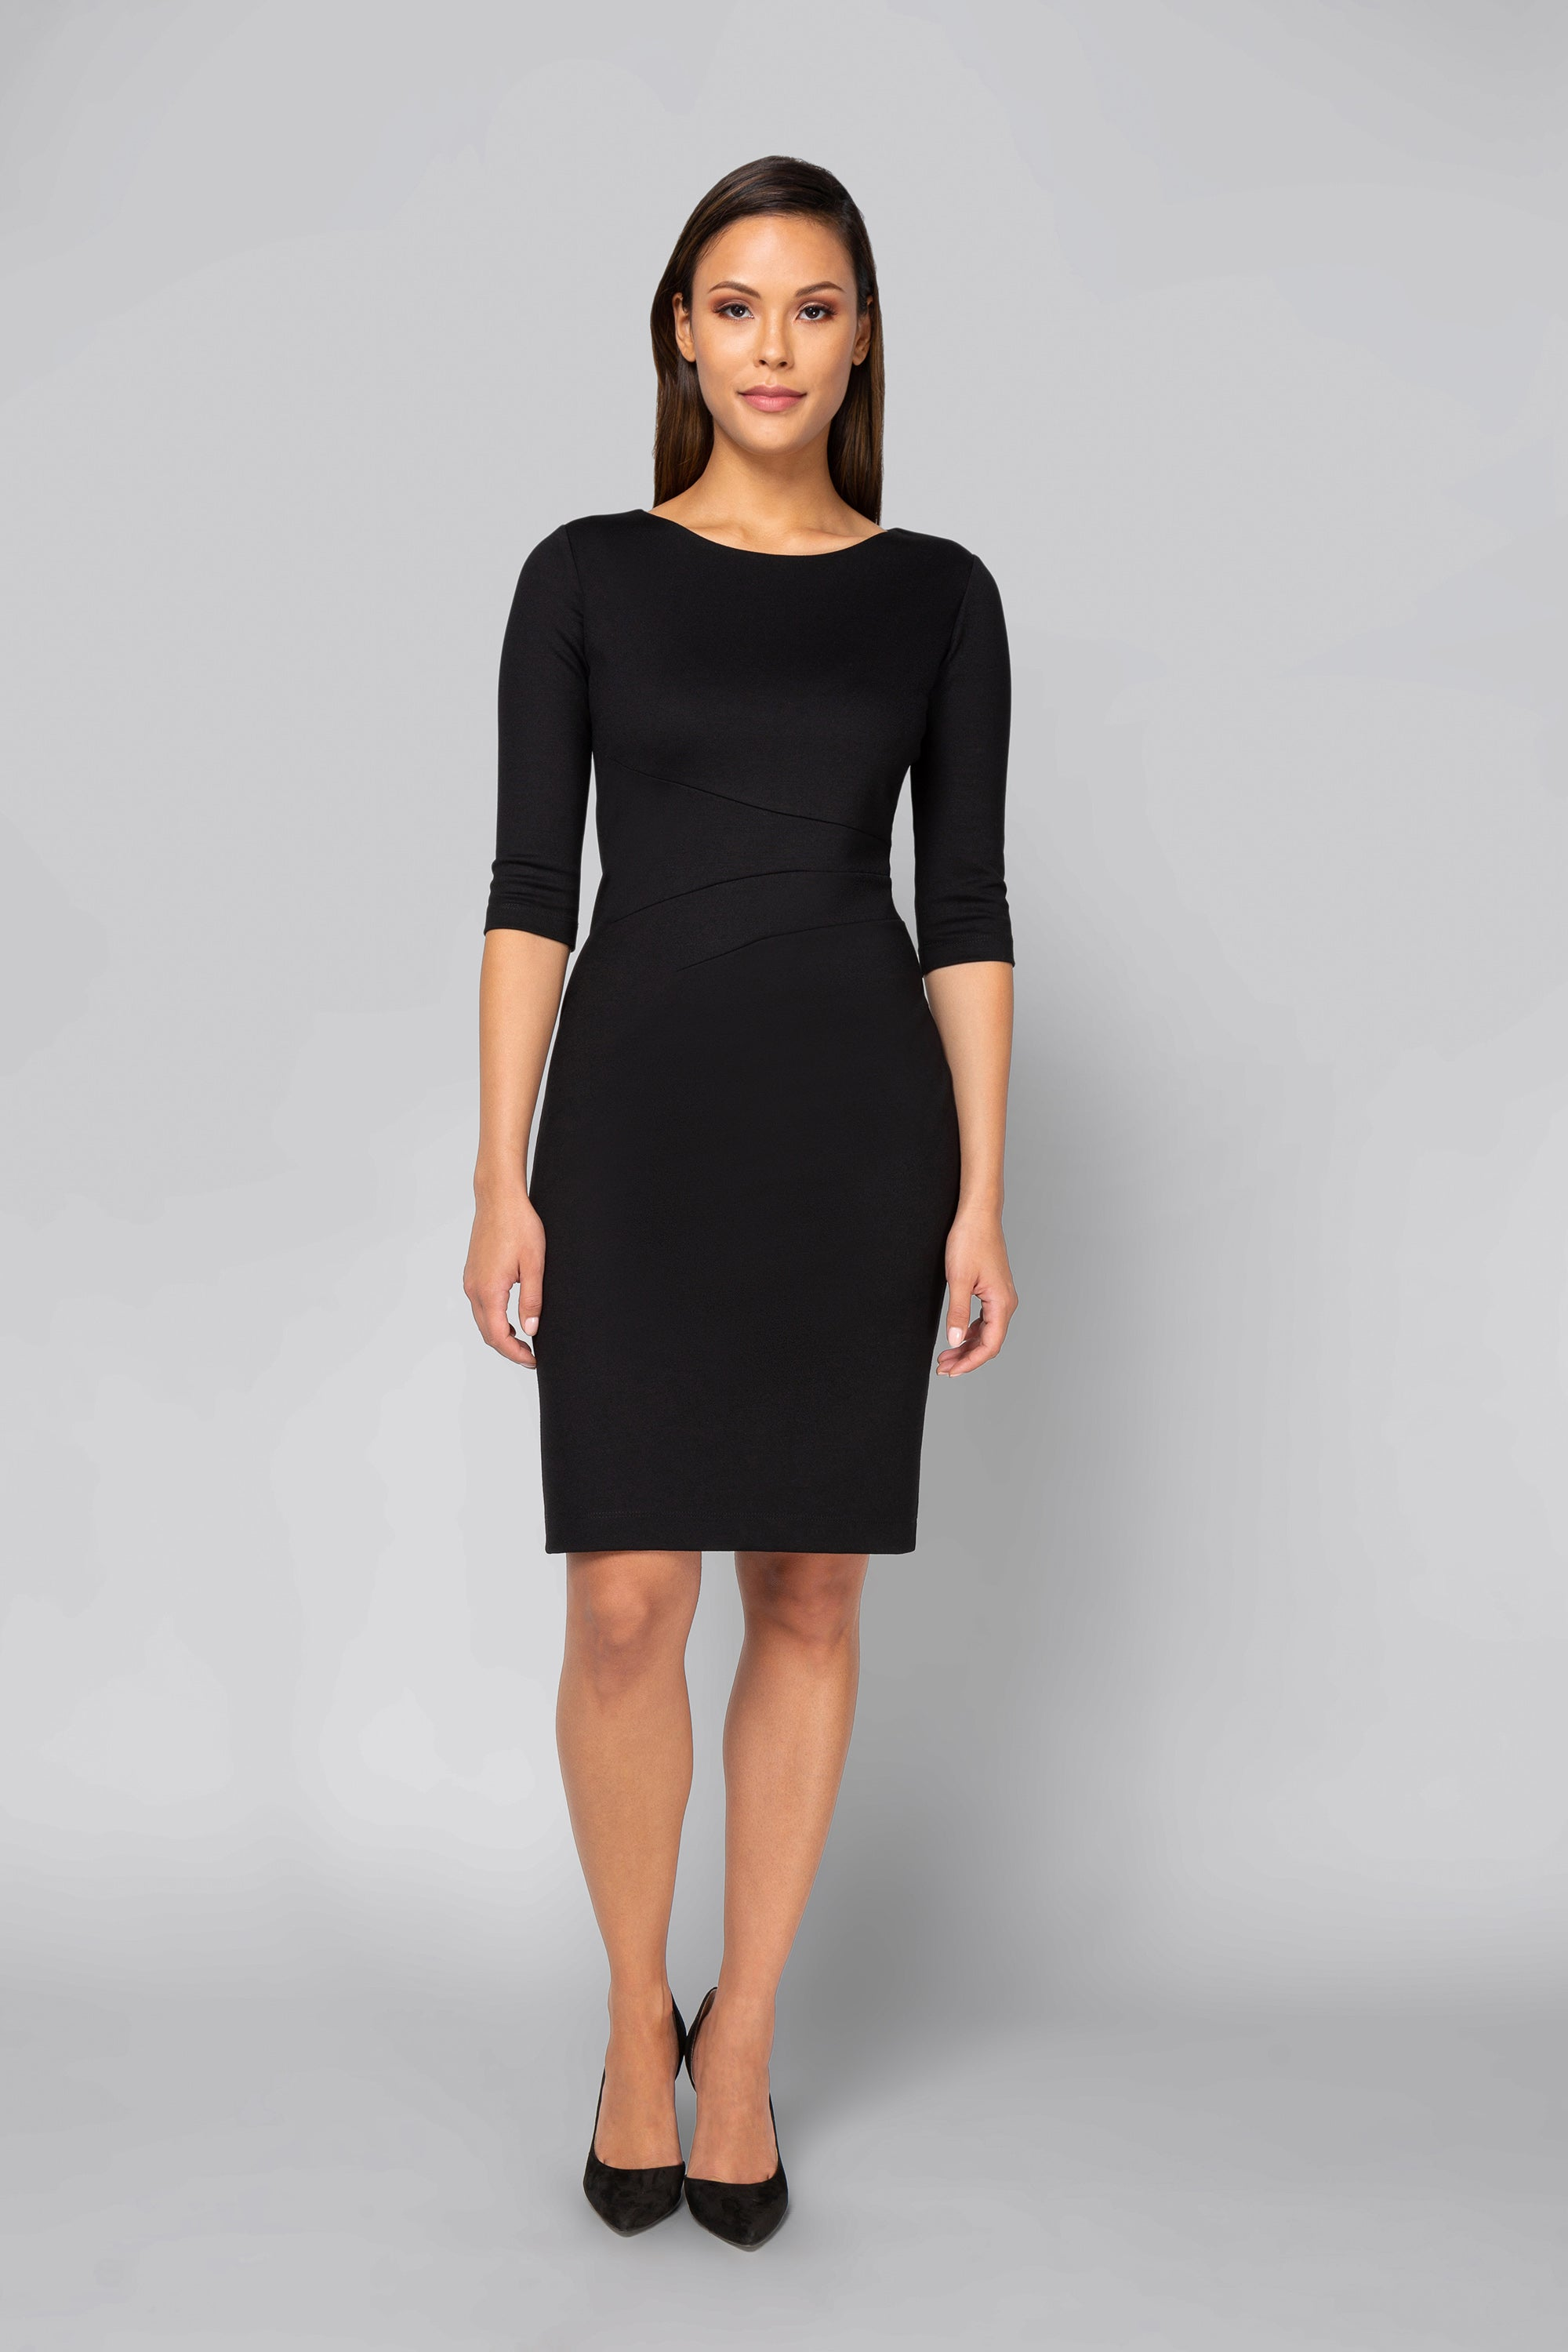 Women's Lydia Dress in Black | Nora Gardner Front